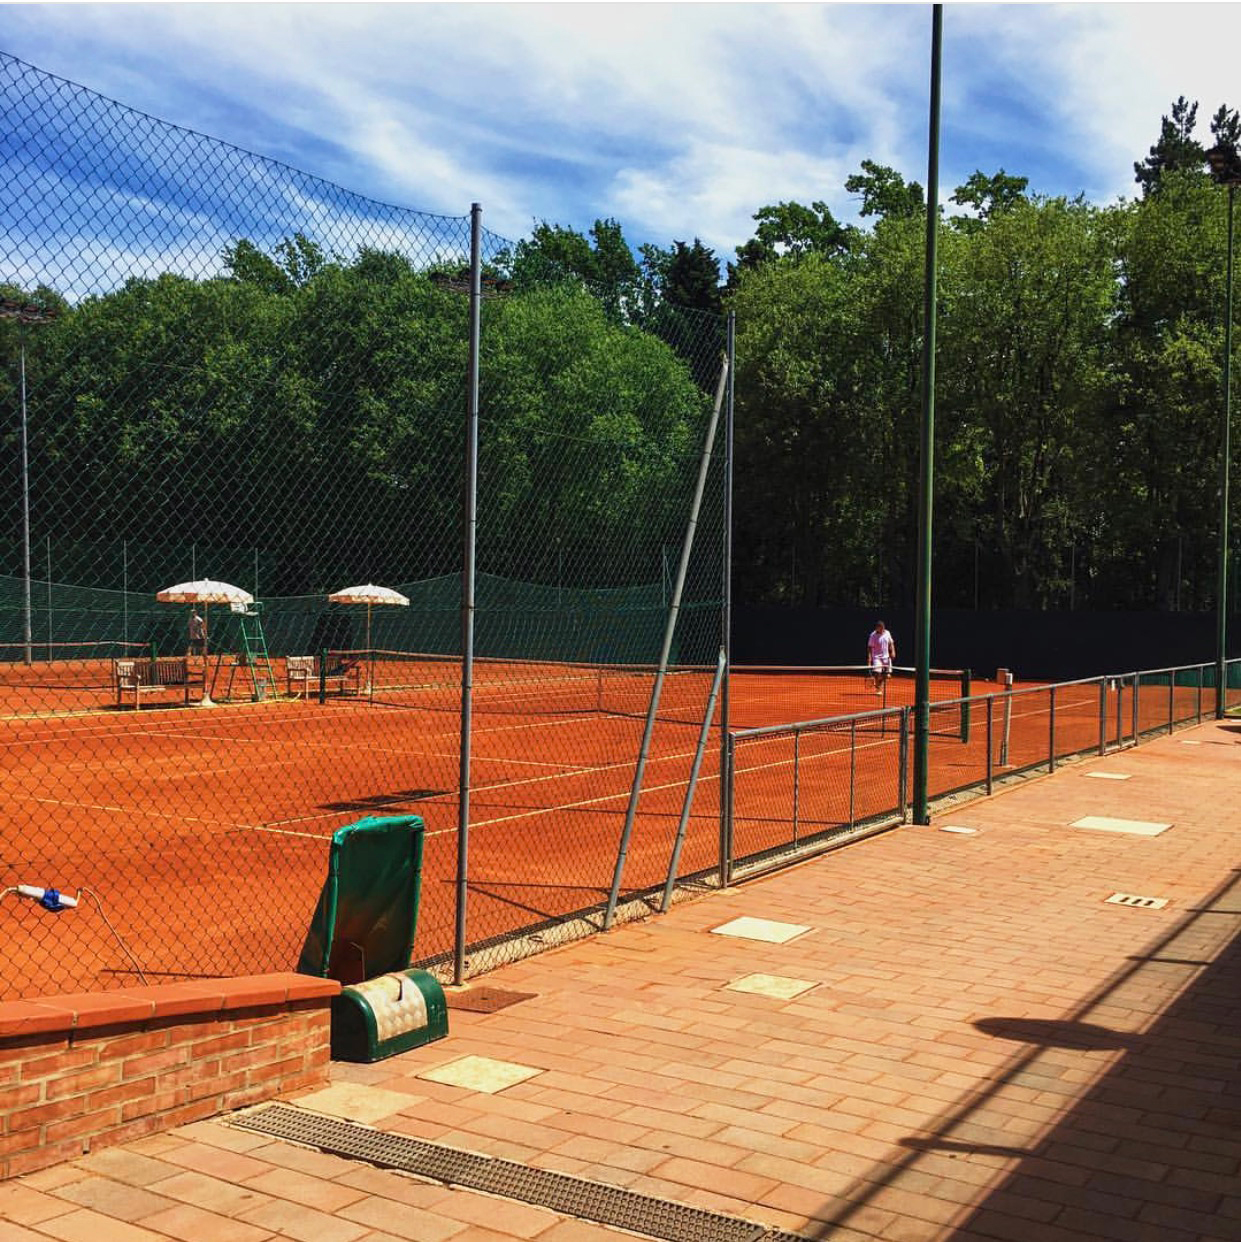 The red clay courts at the exclusive Circolo Tennis Bologna, hidden within the Giardini, as the Bolognese call them.